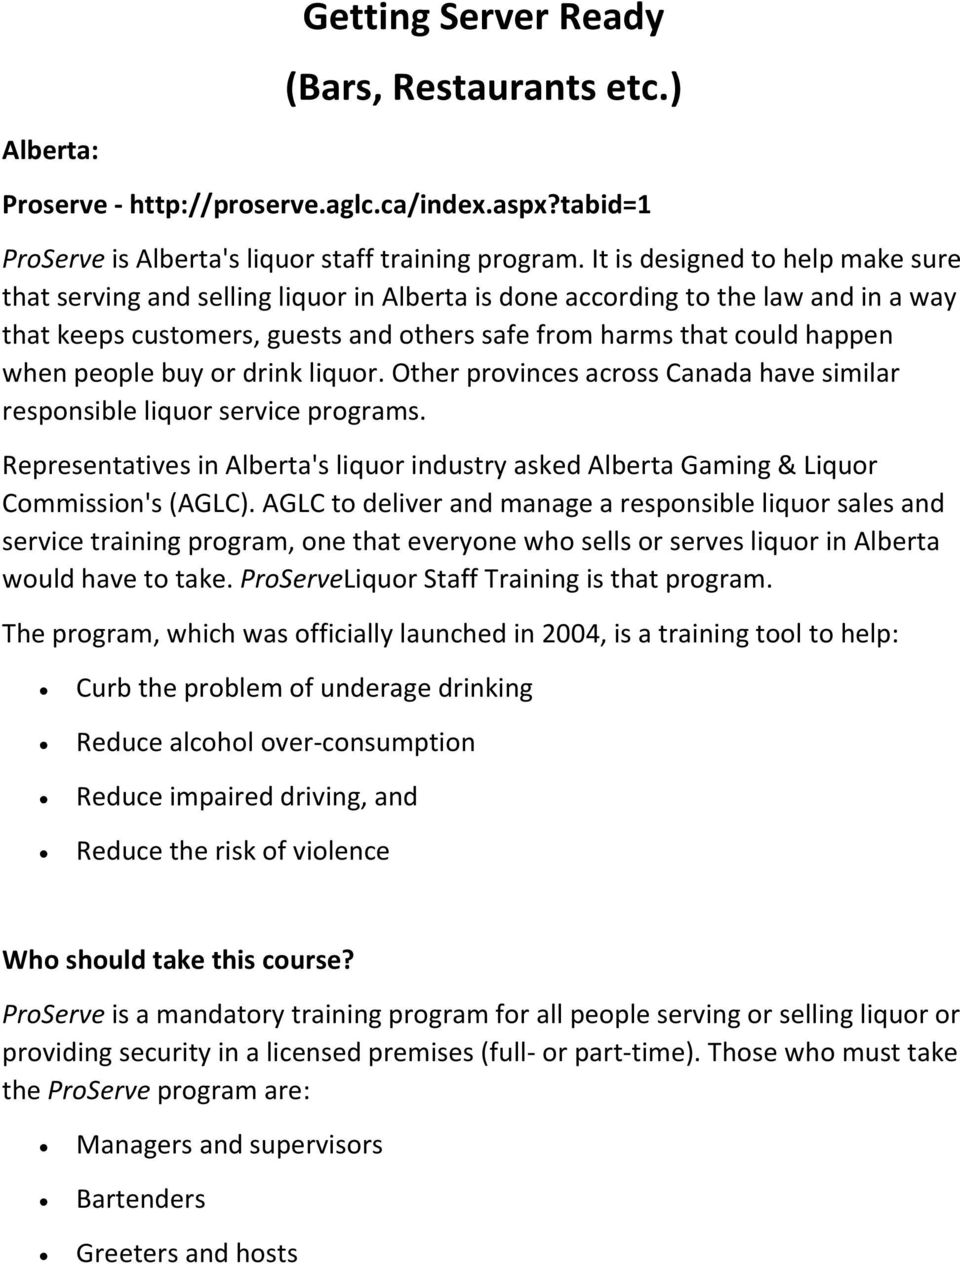 people buy or drink liquor. Other provinces across Canada have similar responsible liquor service programs.